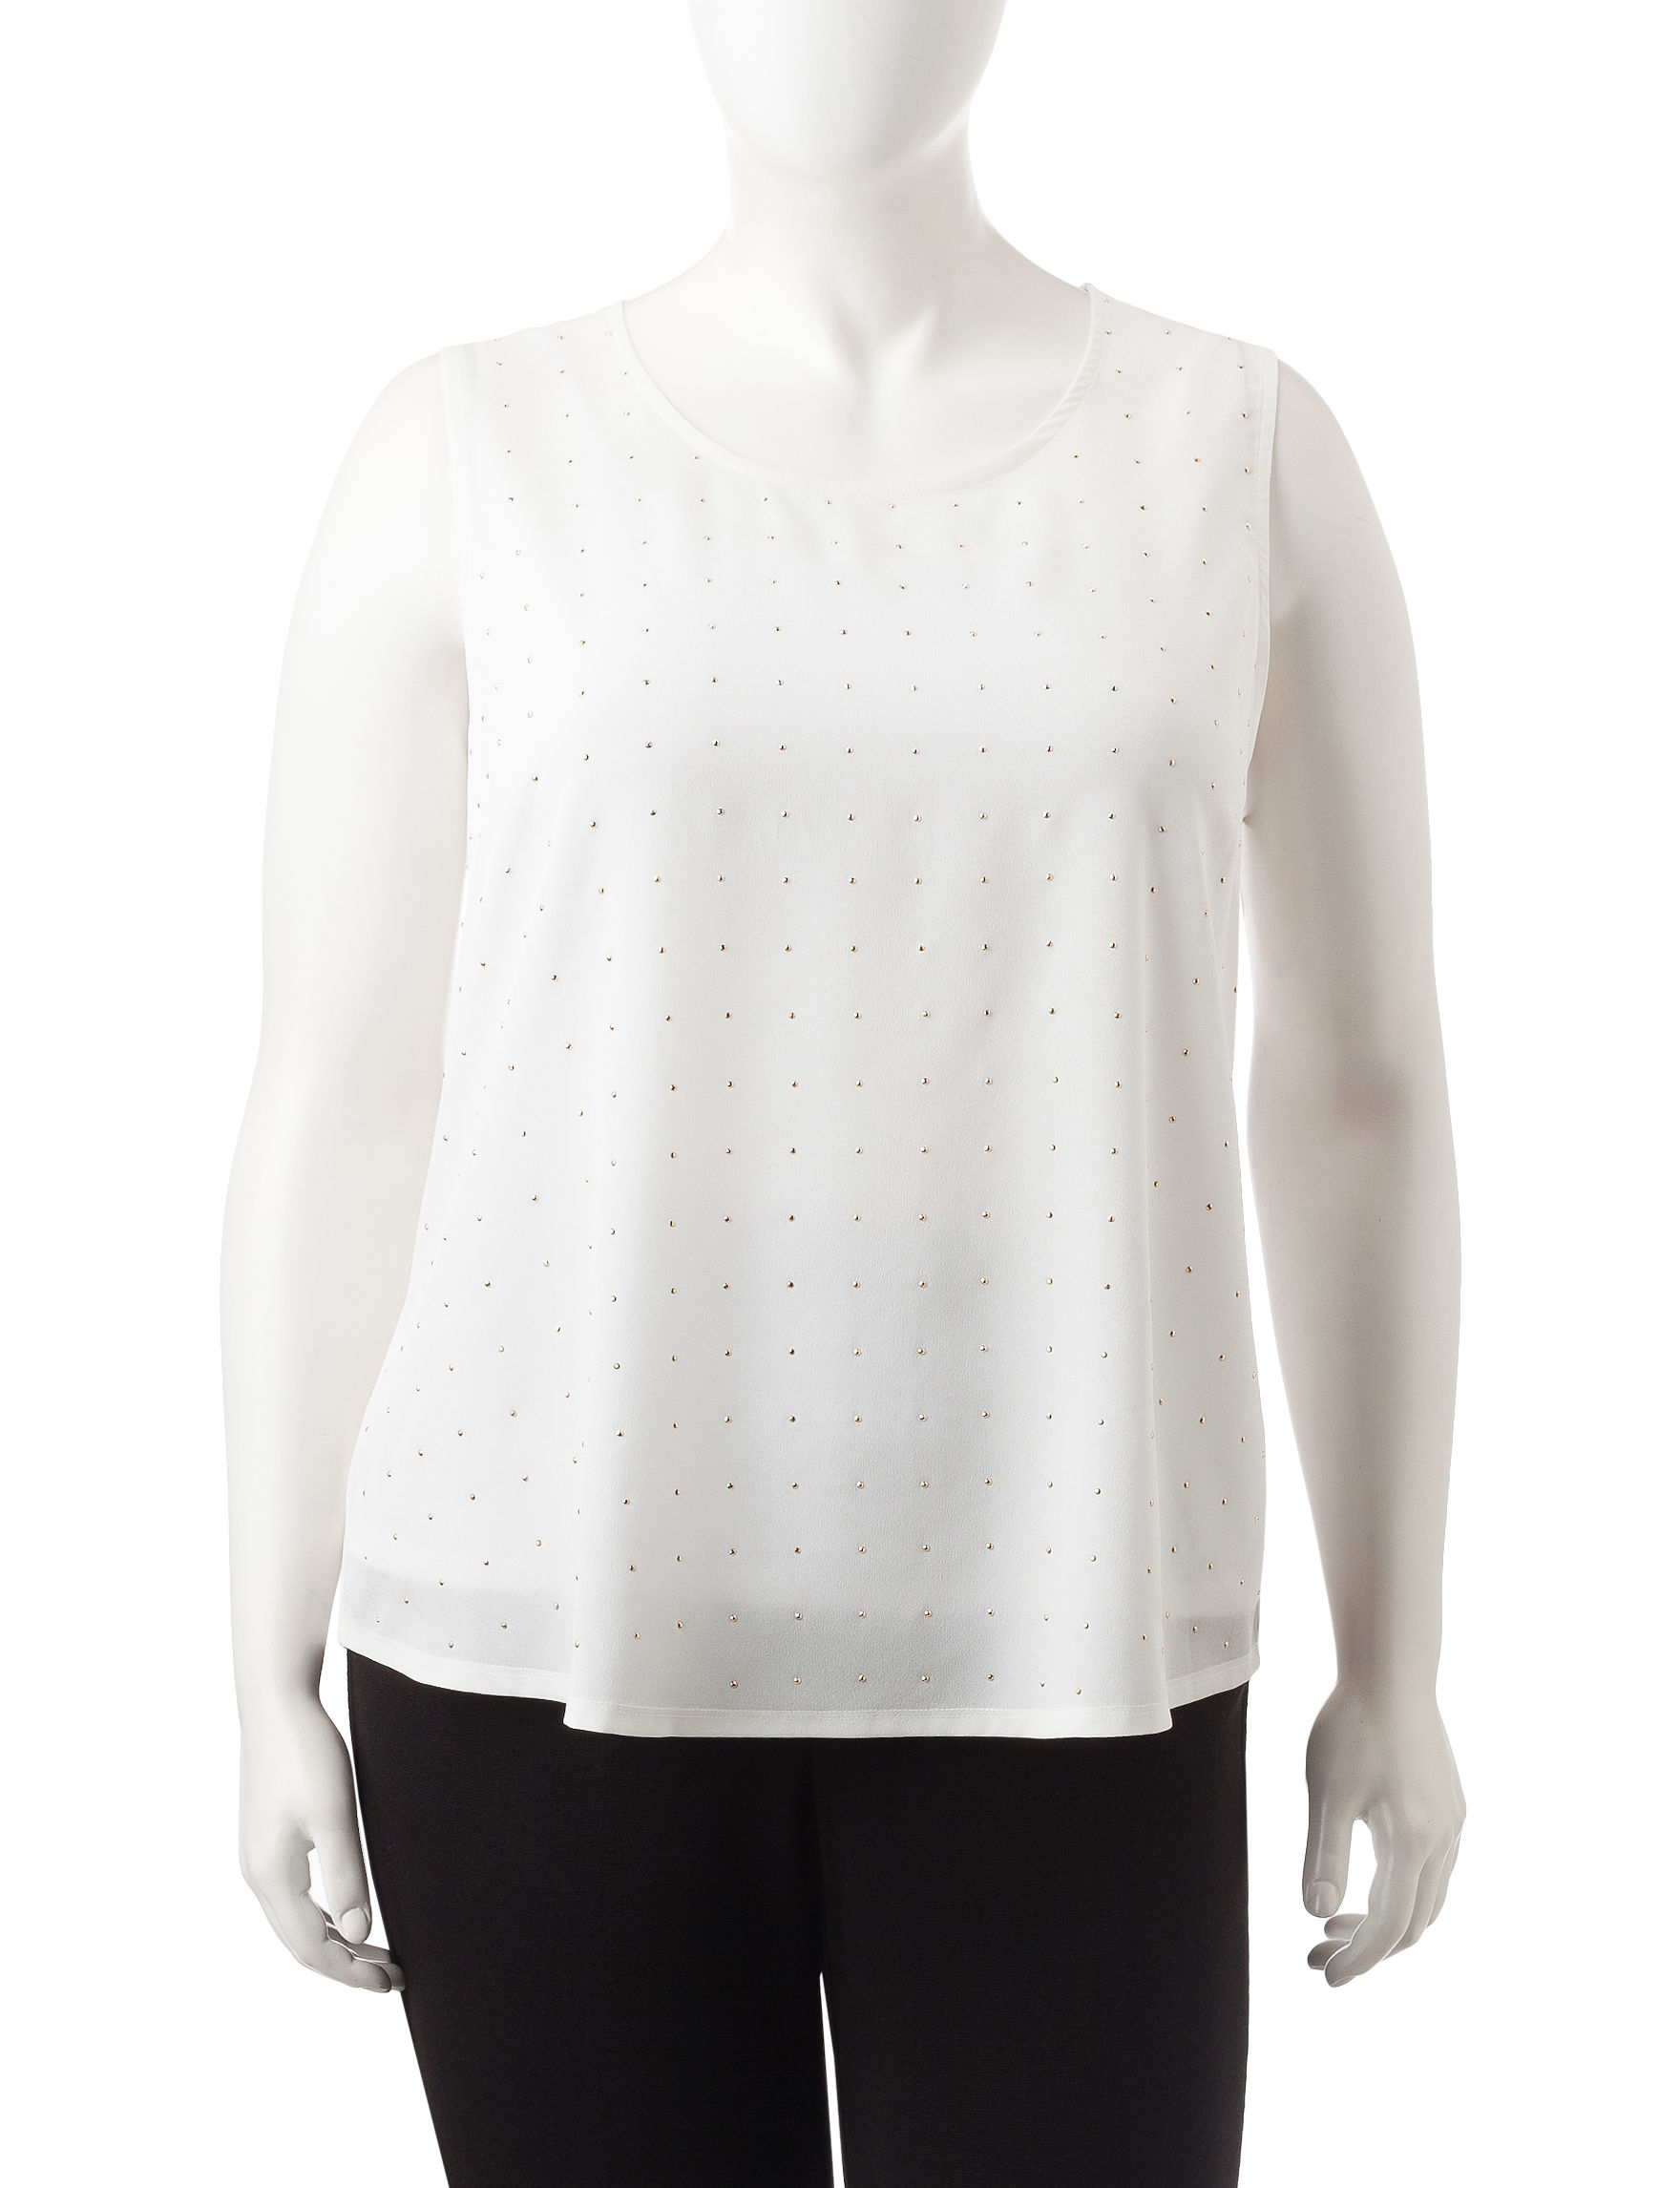 Rebecca Malone Ivory Shirts & Blouses Tees & Tanks